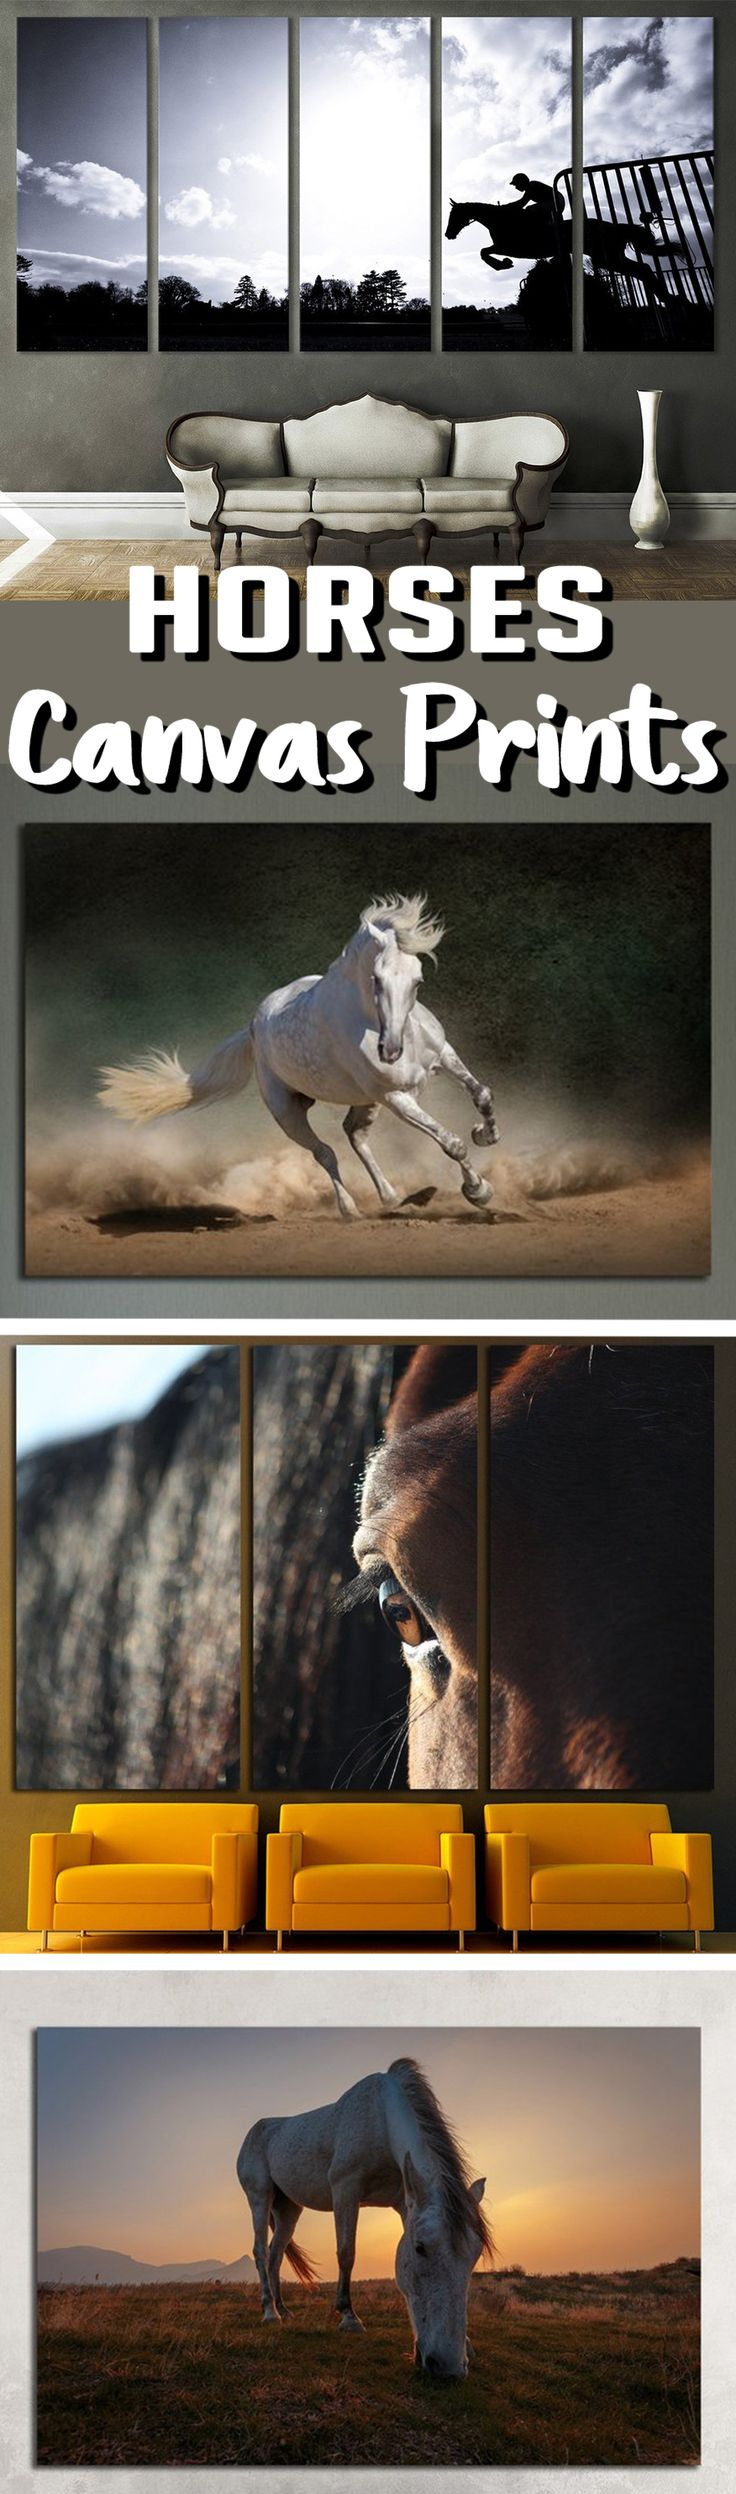 Large Horse Wall Art for Home & Office decoration.